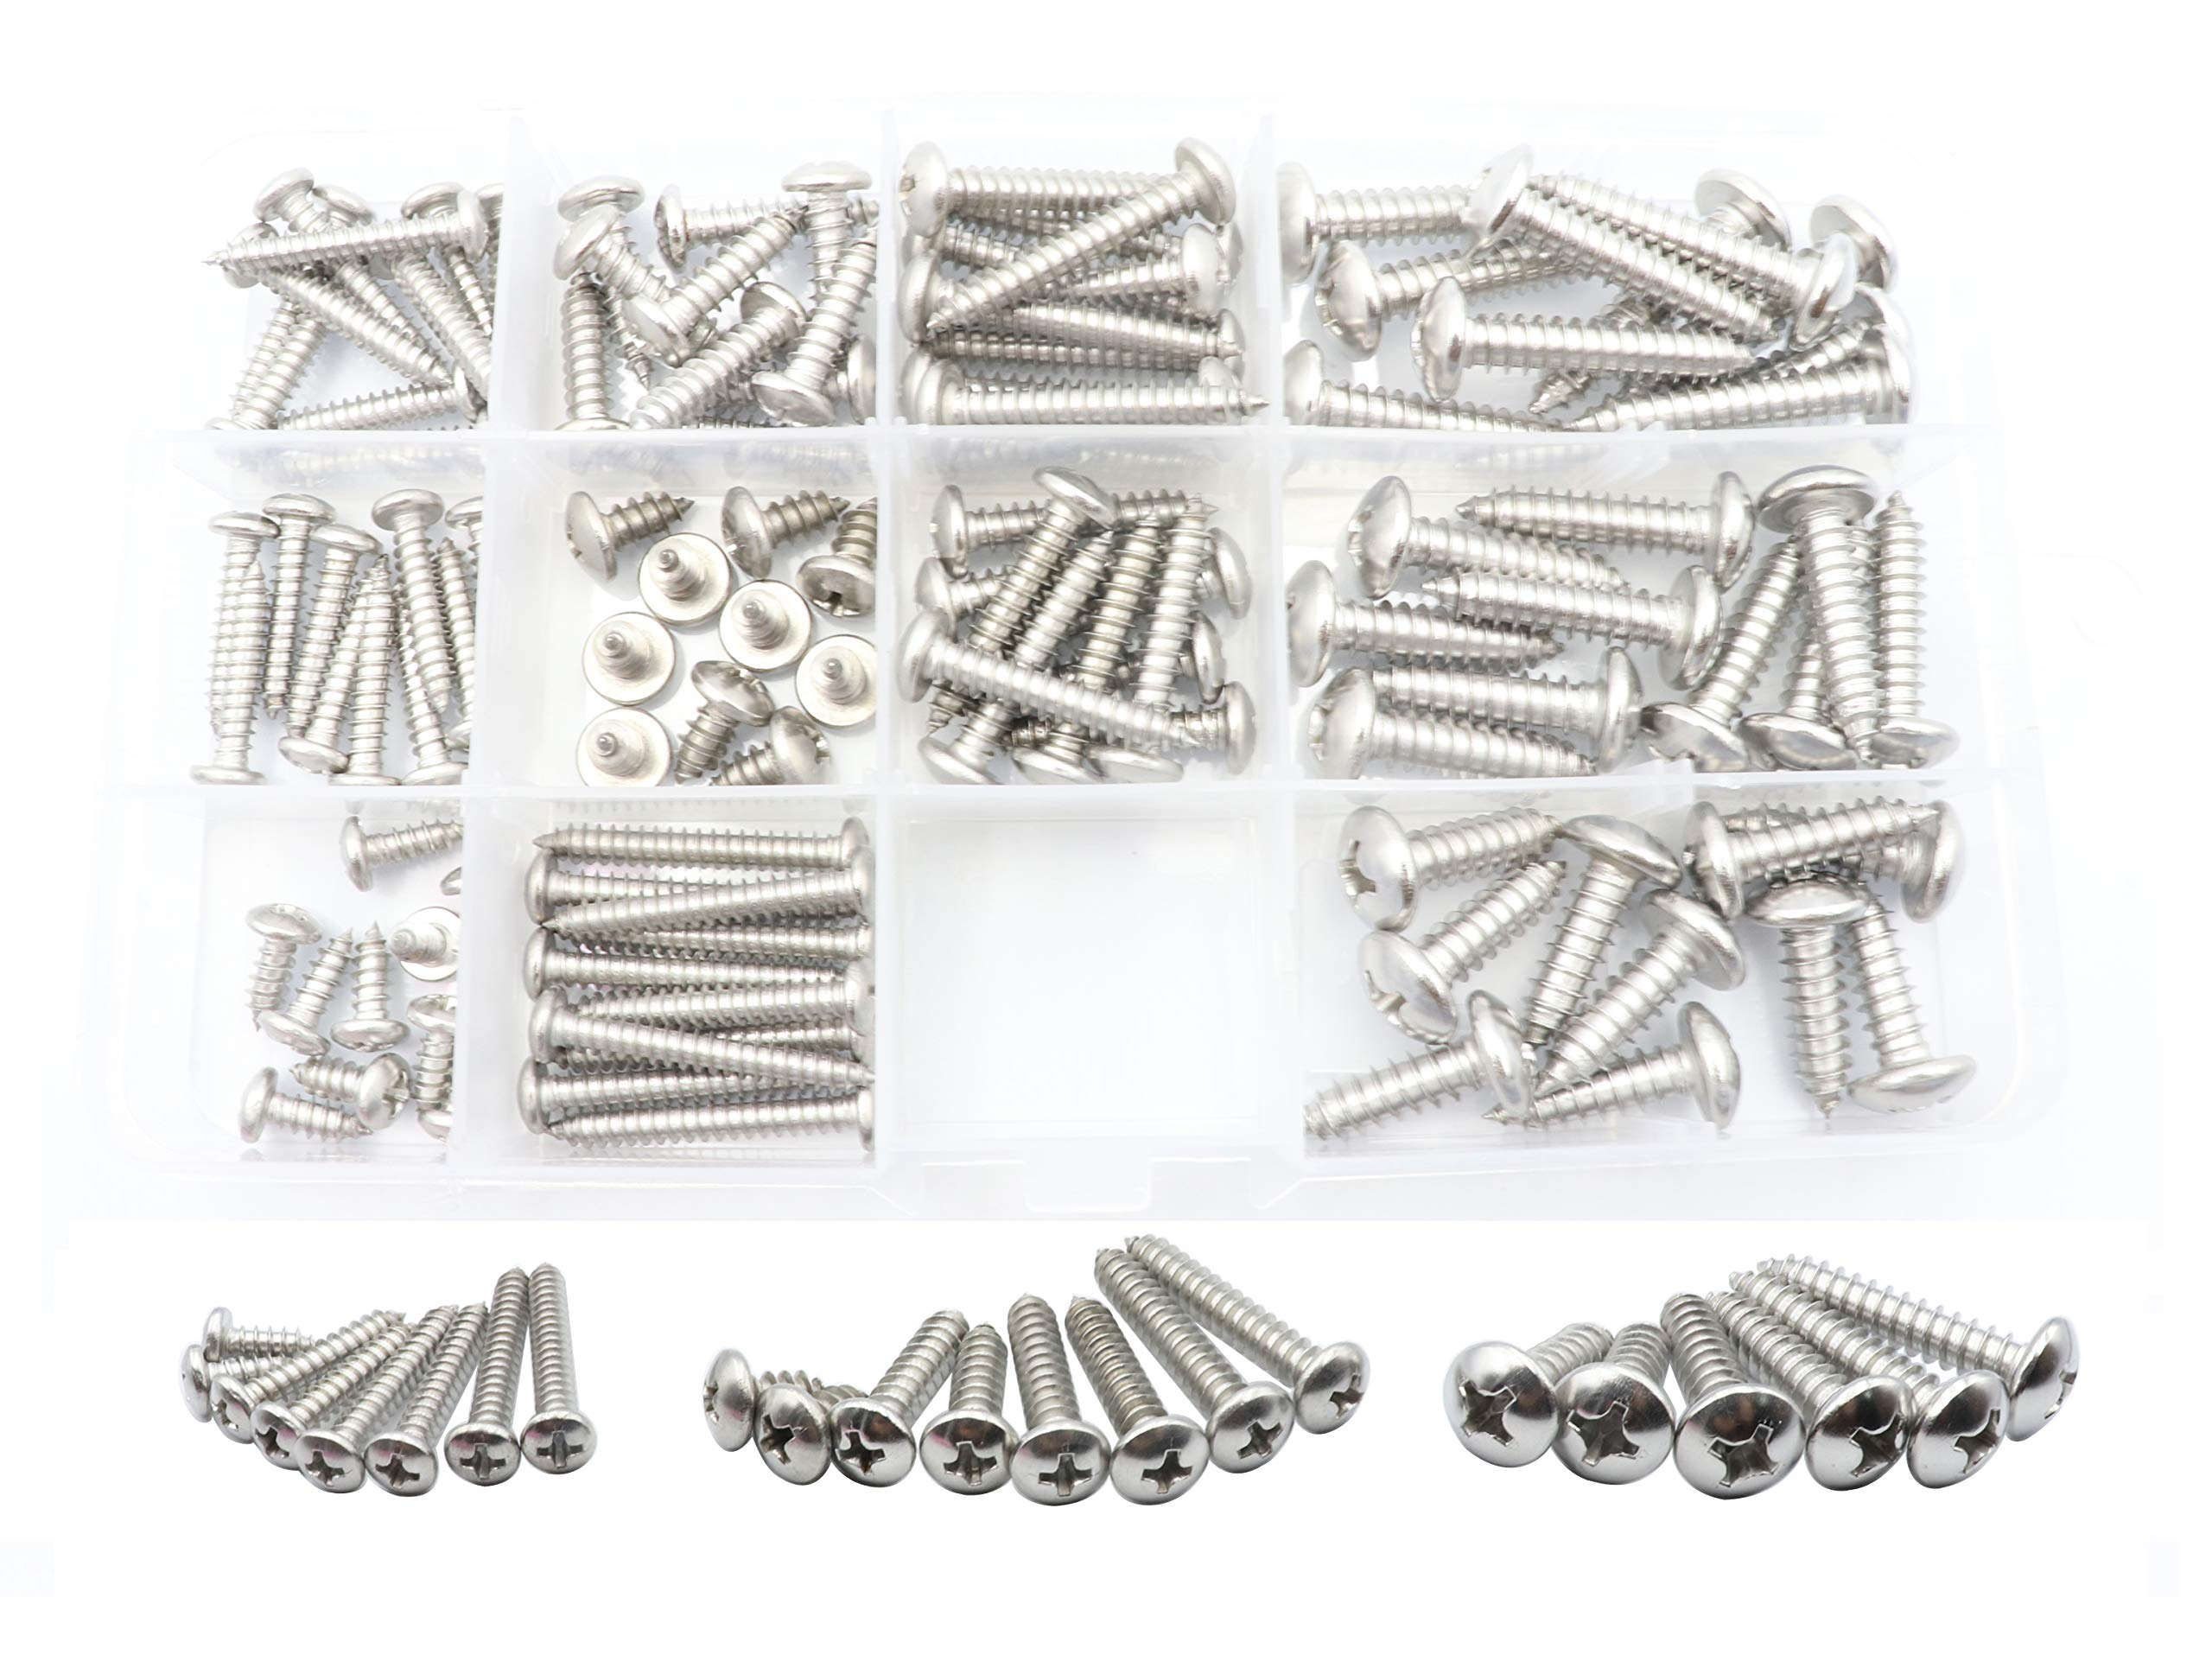 LBY 304 Stainless Steel Cross Recessed Pan Head Tapping Screw Round Head Screw Set 11 Kinds Pack of 110 Pcs